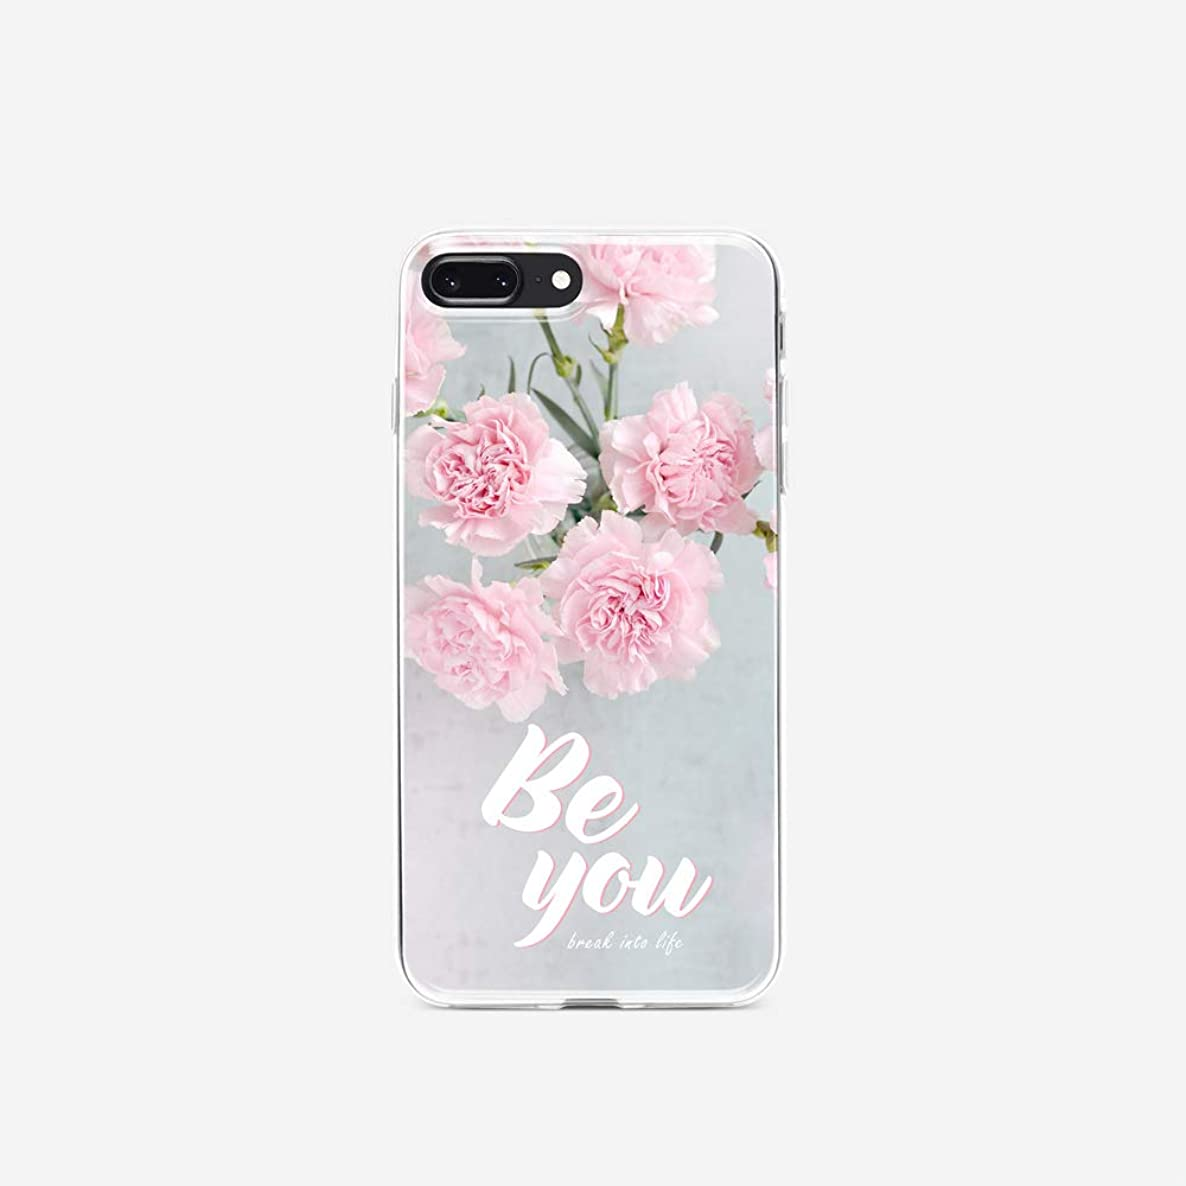 LookSeven iPhone X & iPhone Xs Elegant Vintage Floral Pattern Durable Slim Protector Clear Case Cover for iPhone X & iPhone Xs #2